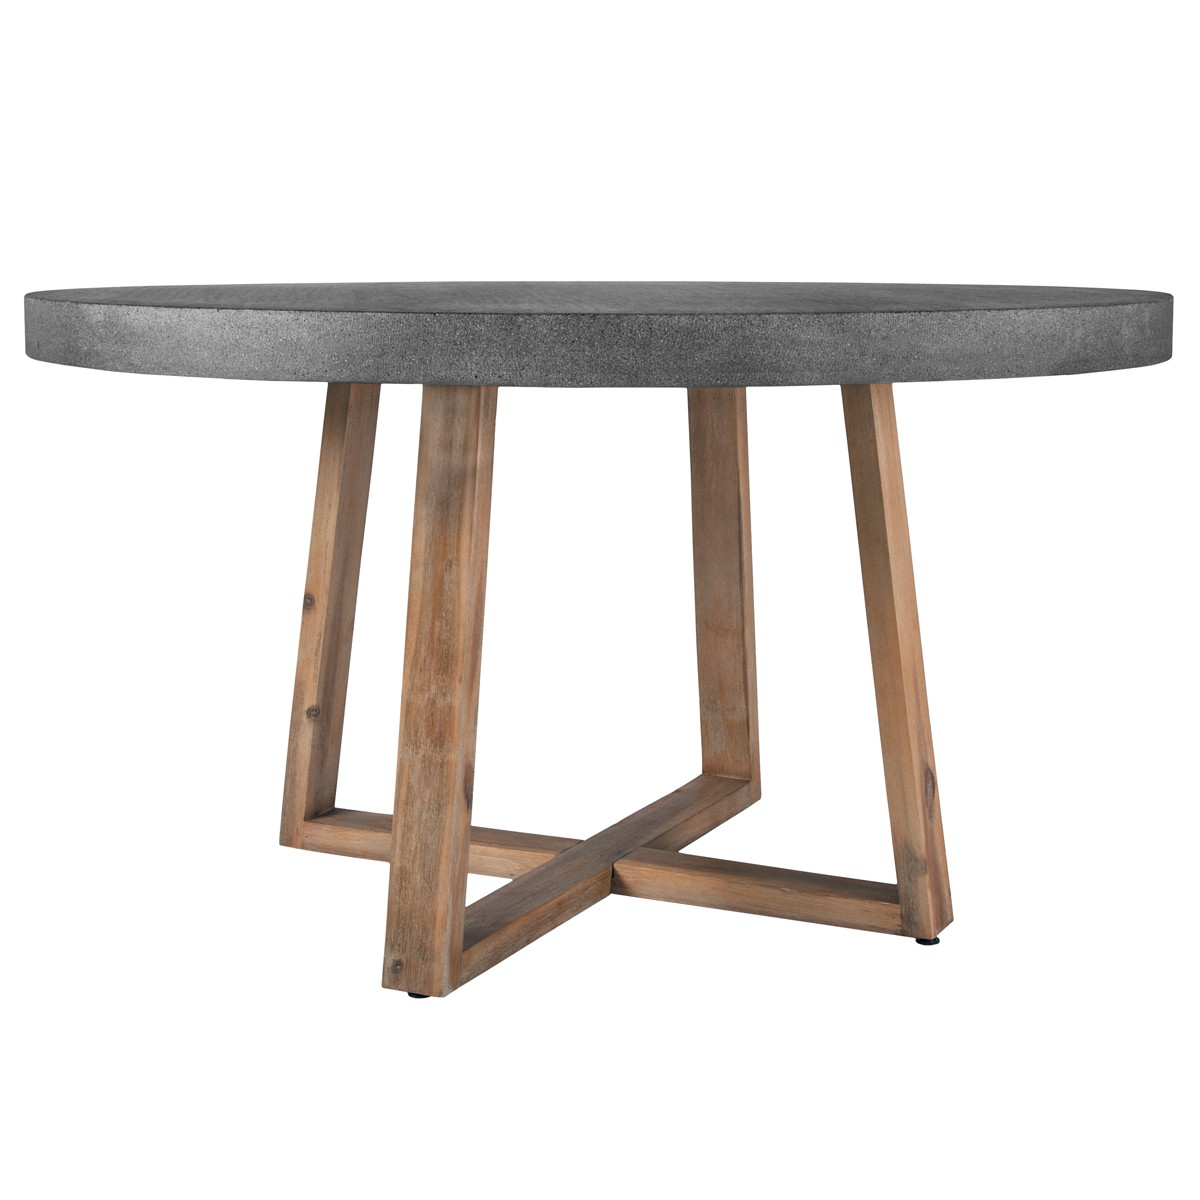 Table ronde r sine et bois 140 cm koya design - Table ronde en bois ...